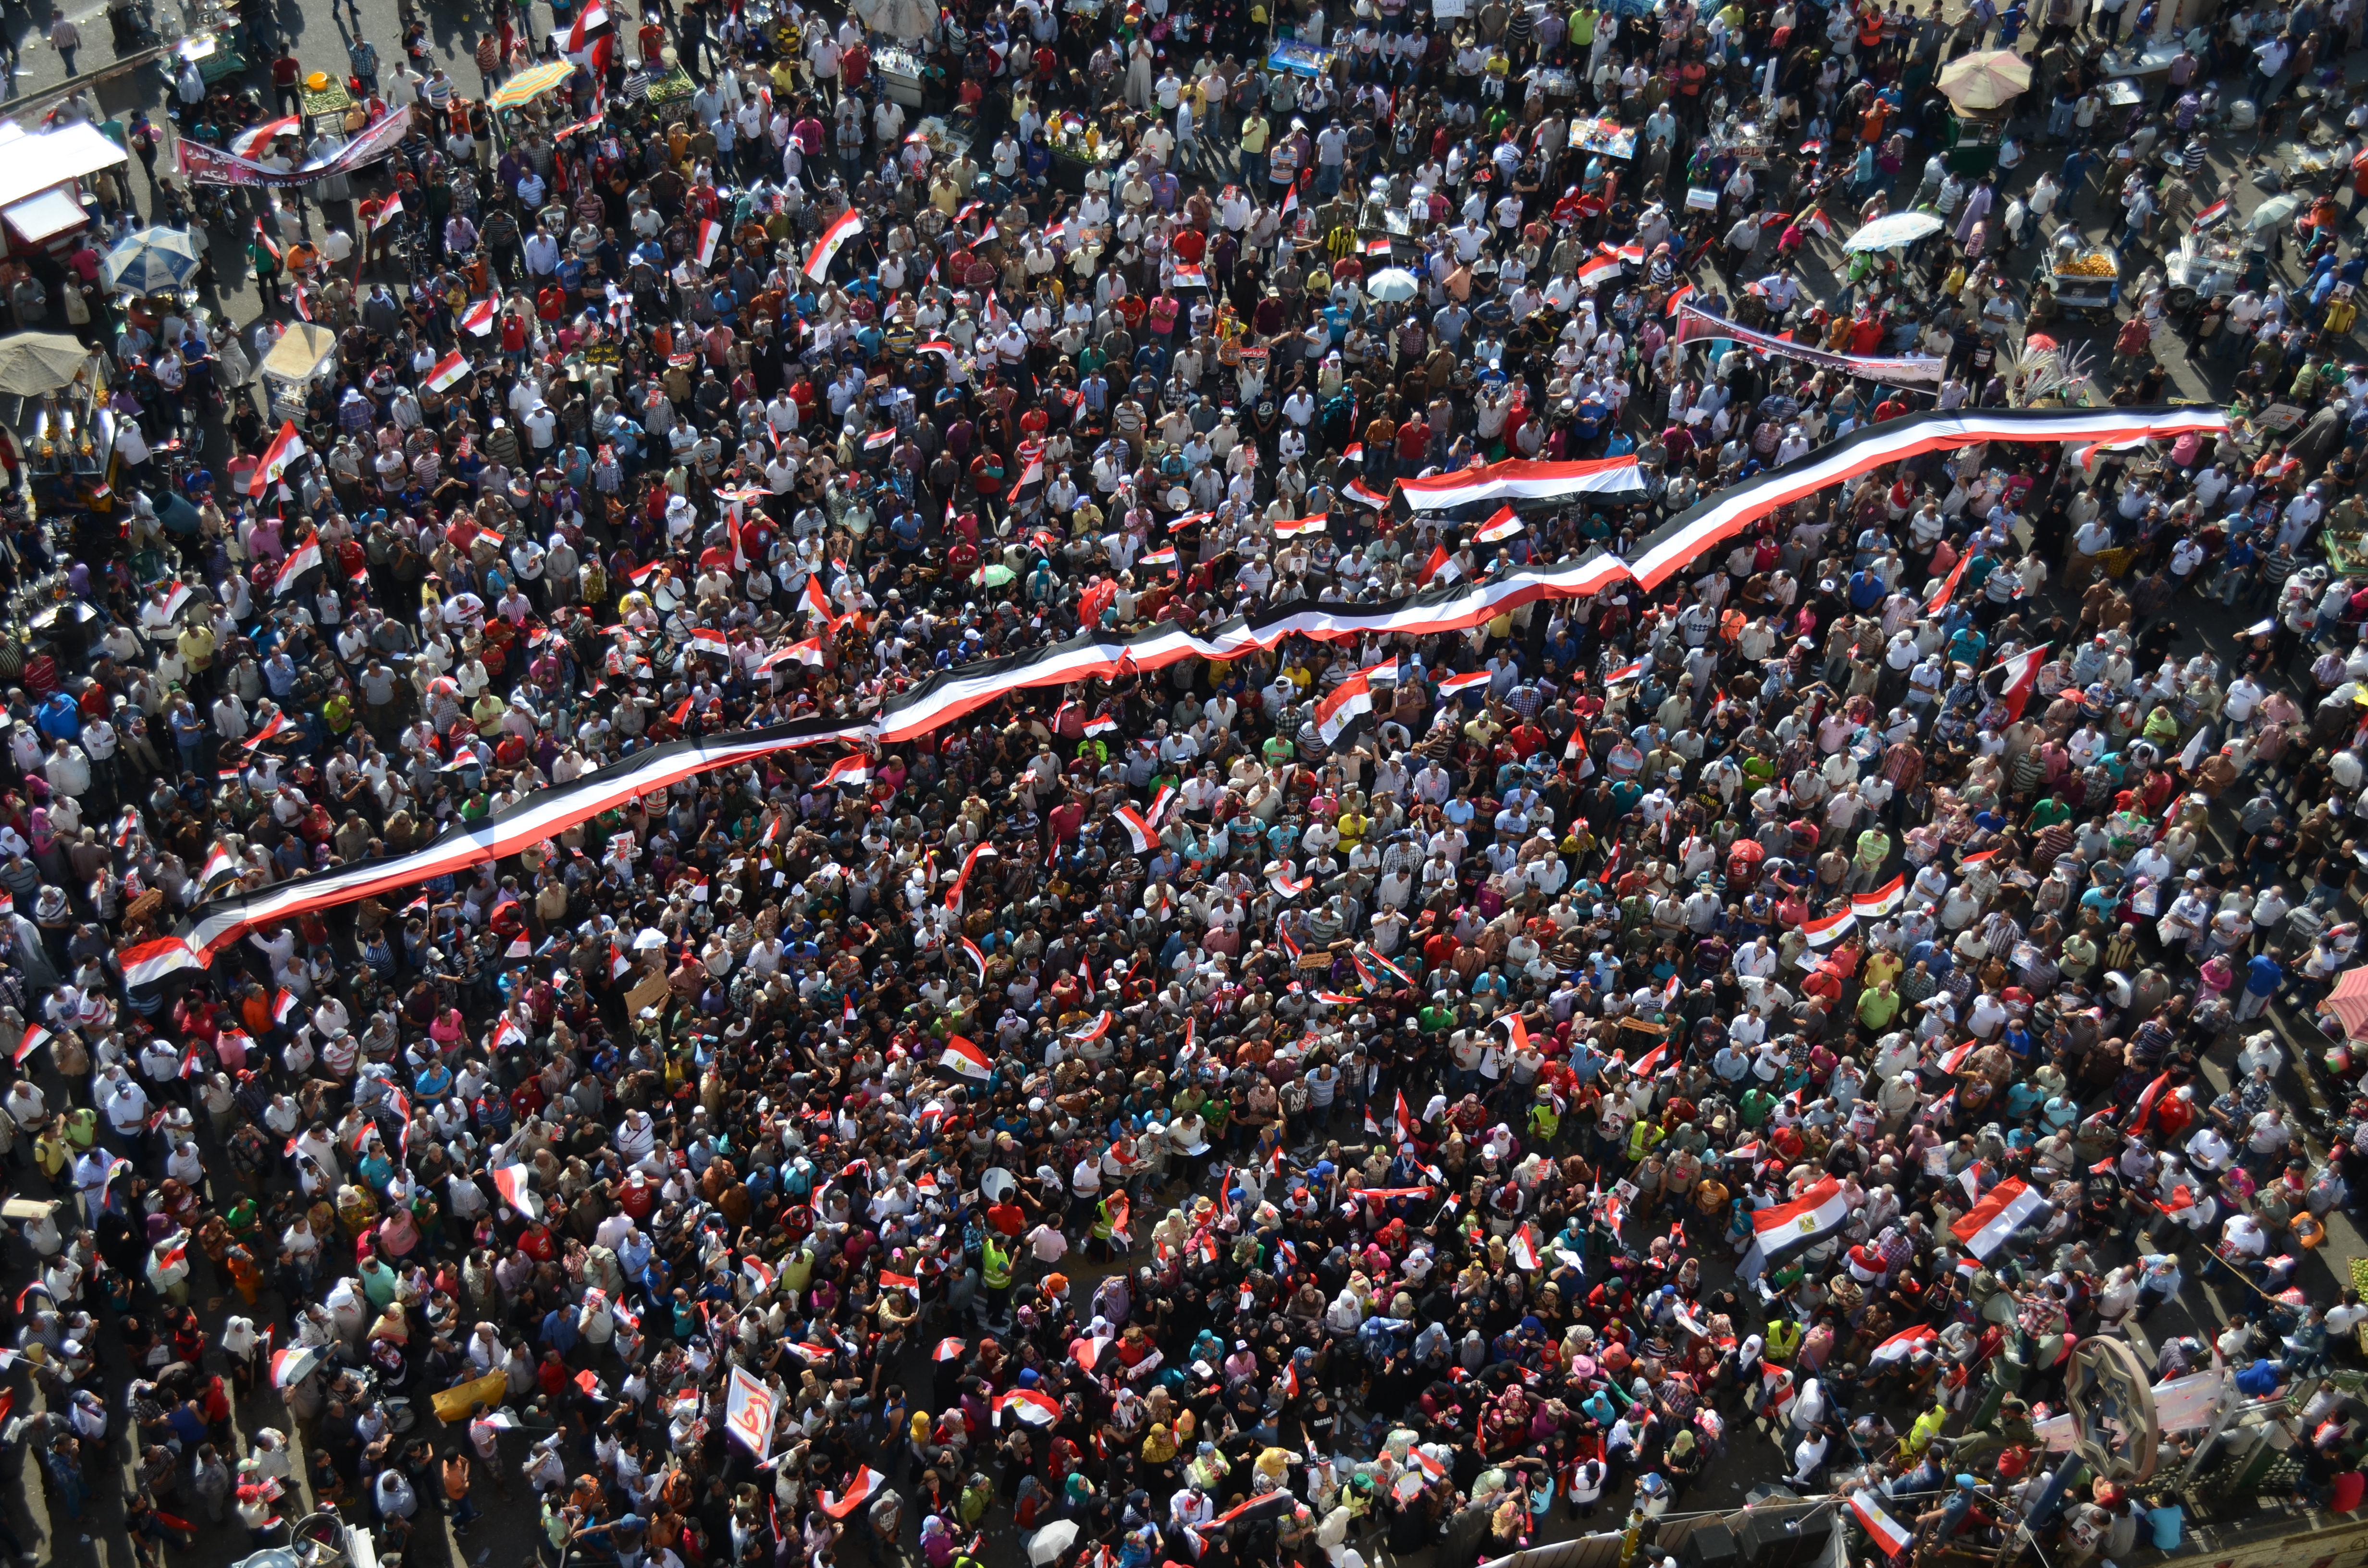 Protestors forced the closure of the Mogamma building in Tahrir Square on Wednesday 8am, to underscore their demands. (DNE Photo)